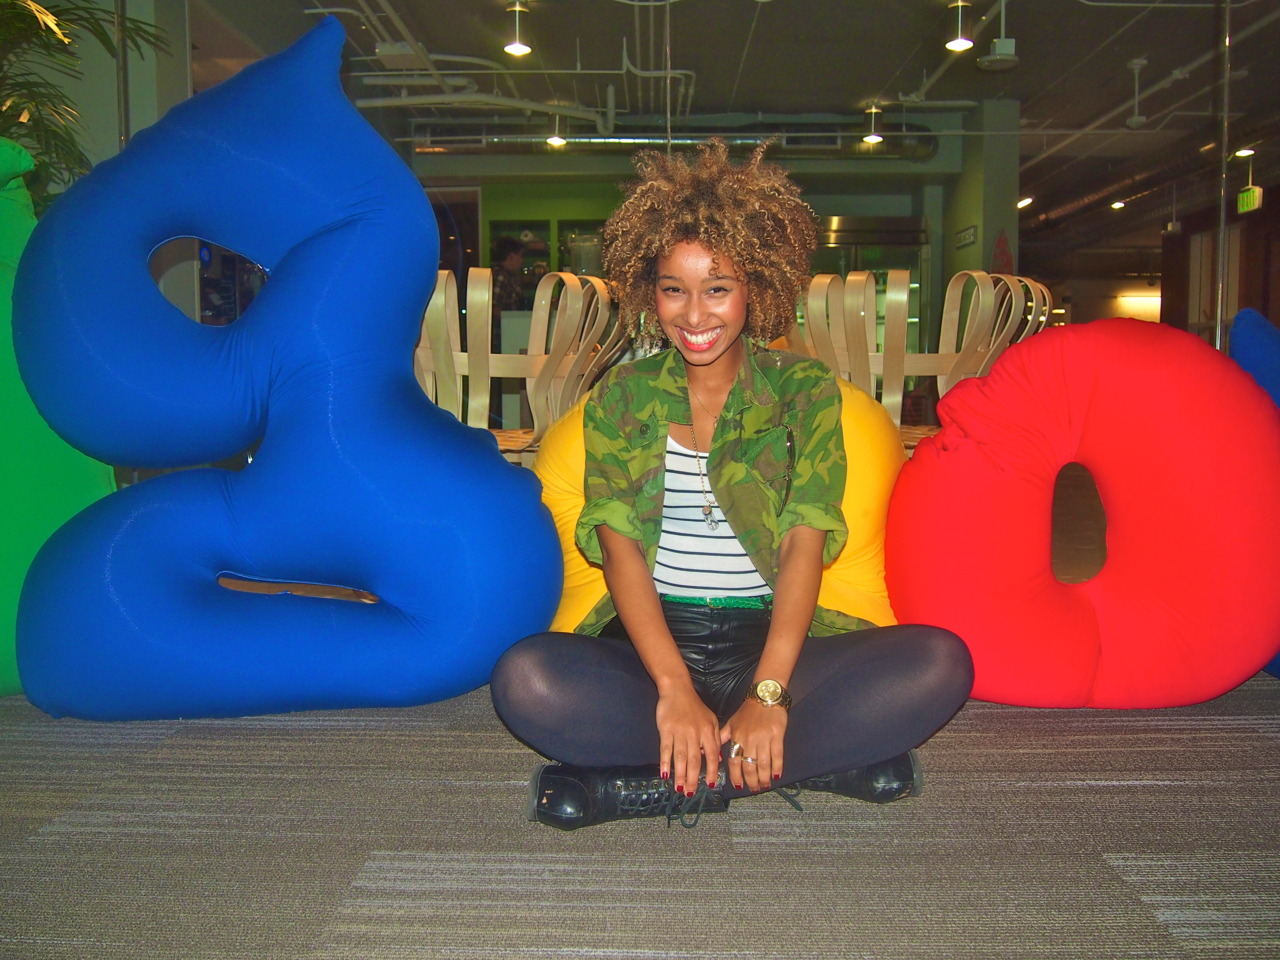 IMAN: At the Google building